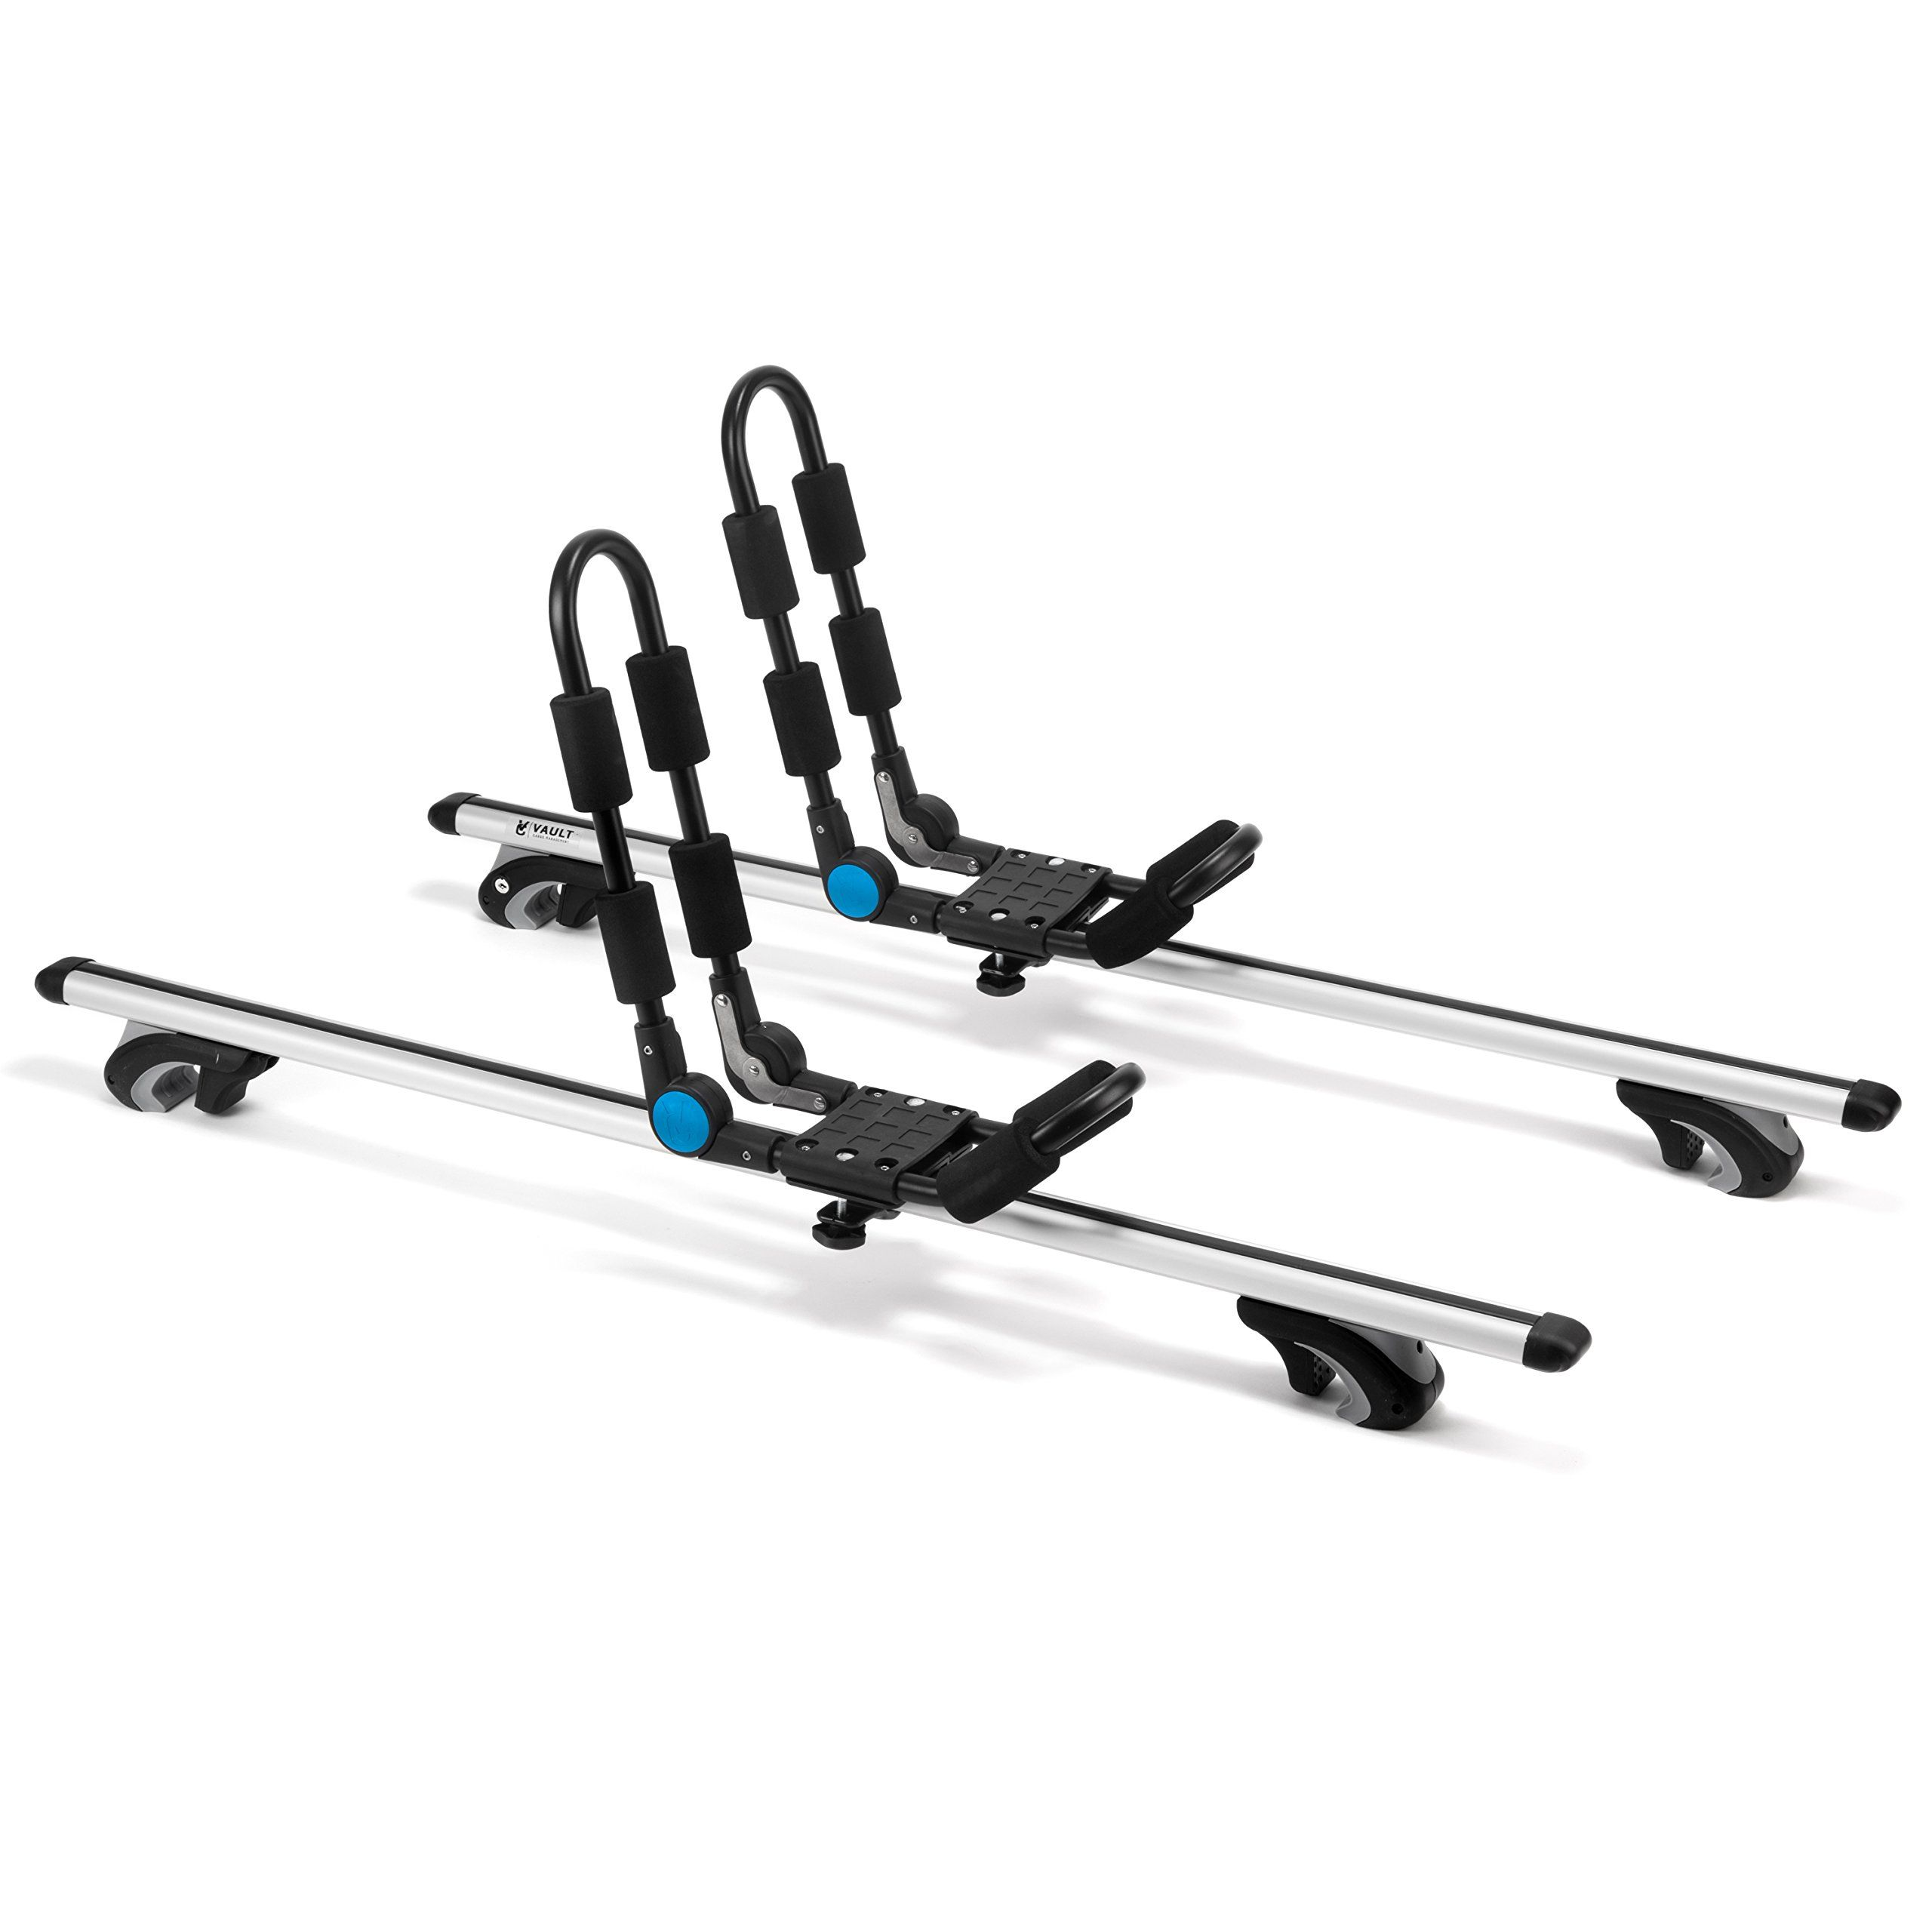 Universal Kayak Carrier Roof Rack by Vault Cargo – Set